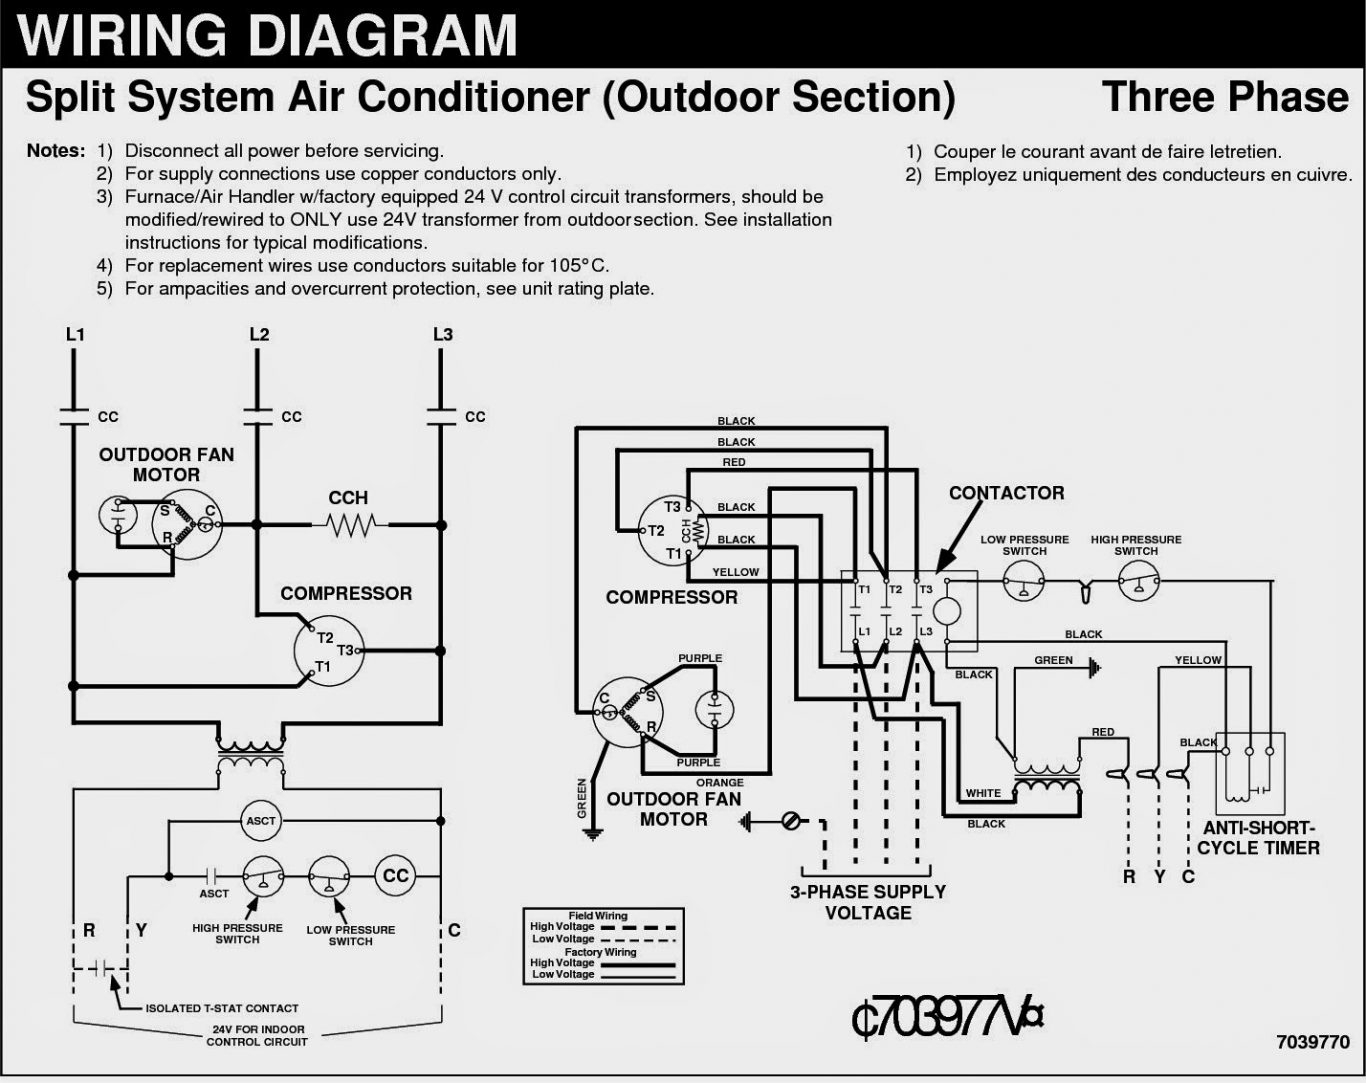 vita spa l200 wiring diagram gallery carrier rva c wiring diagram carrier hvac fan wiring diagram